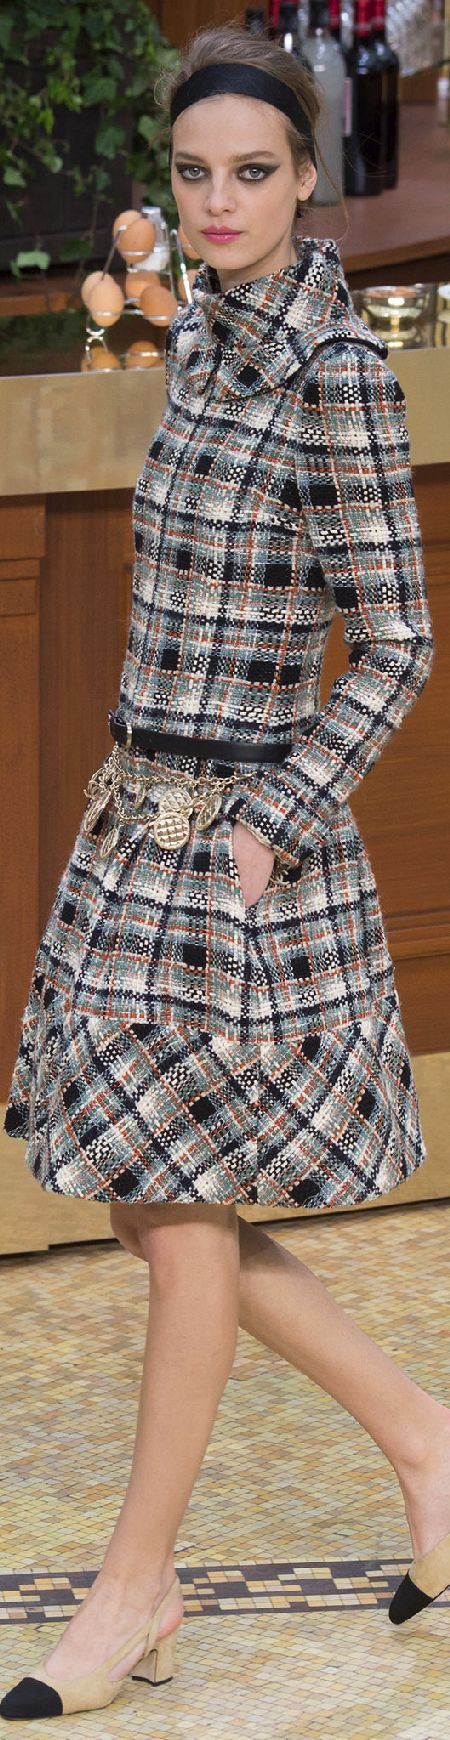 Fall 2015 Ready-to-Wear Chanel